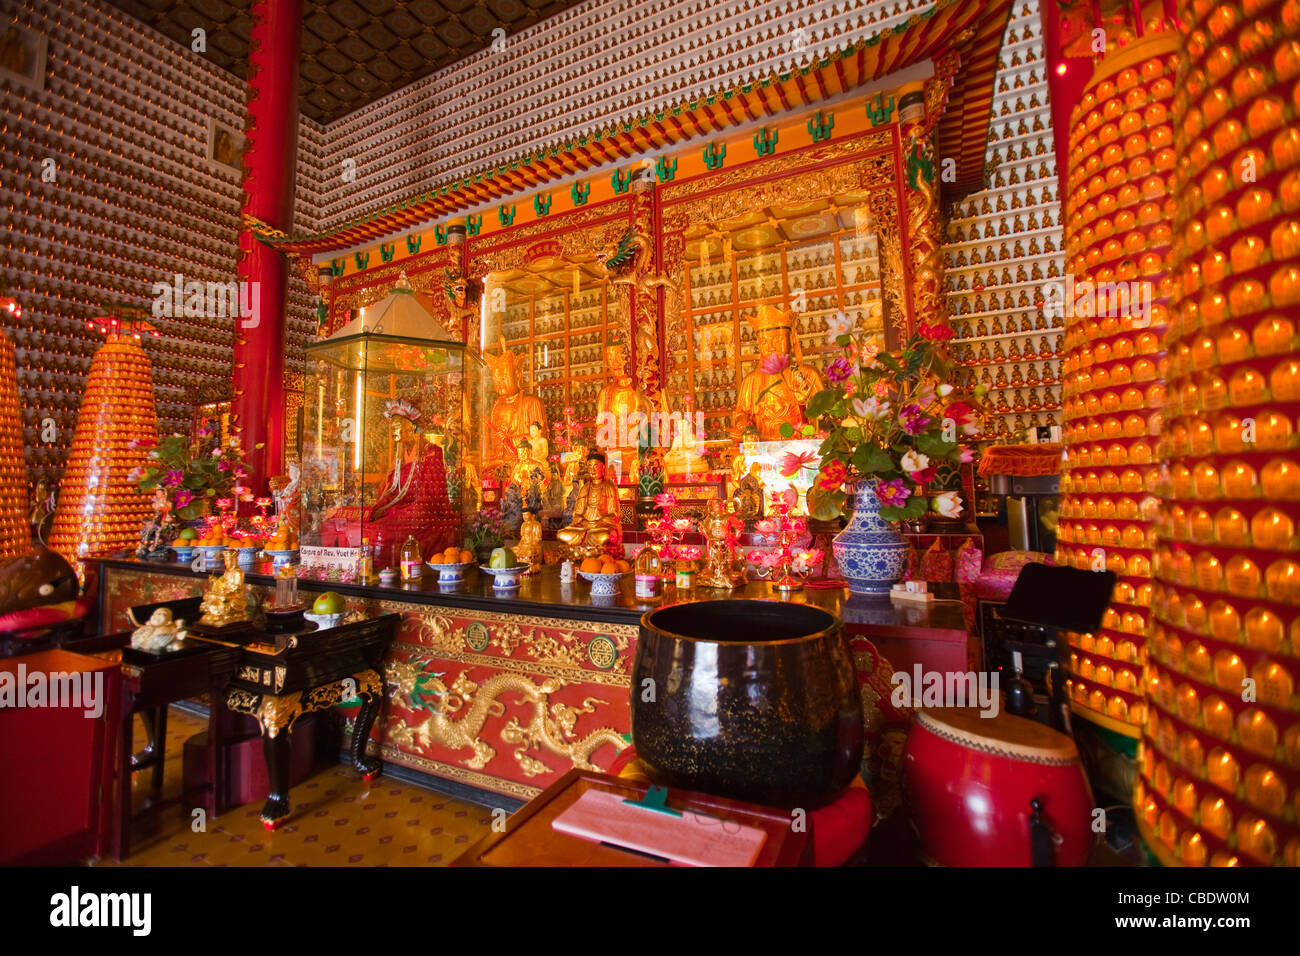 10,000 Buddhas Monastery, Hong Kong, China - Stock Image